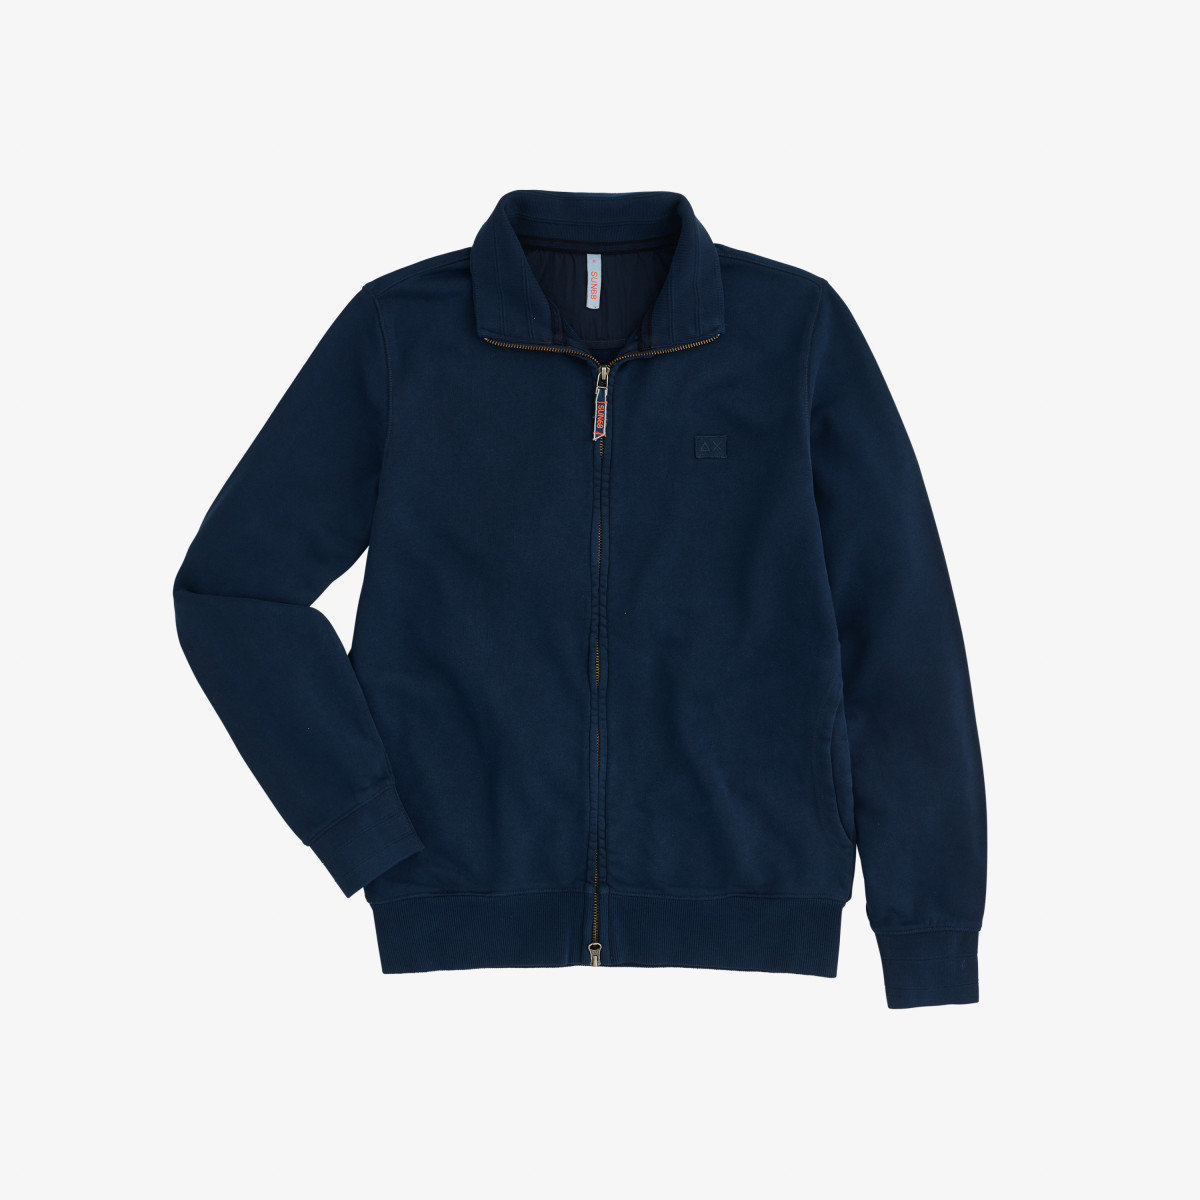 FULL ZIP GARMENT DYE COTTON FL NAVY BLUE